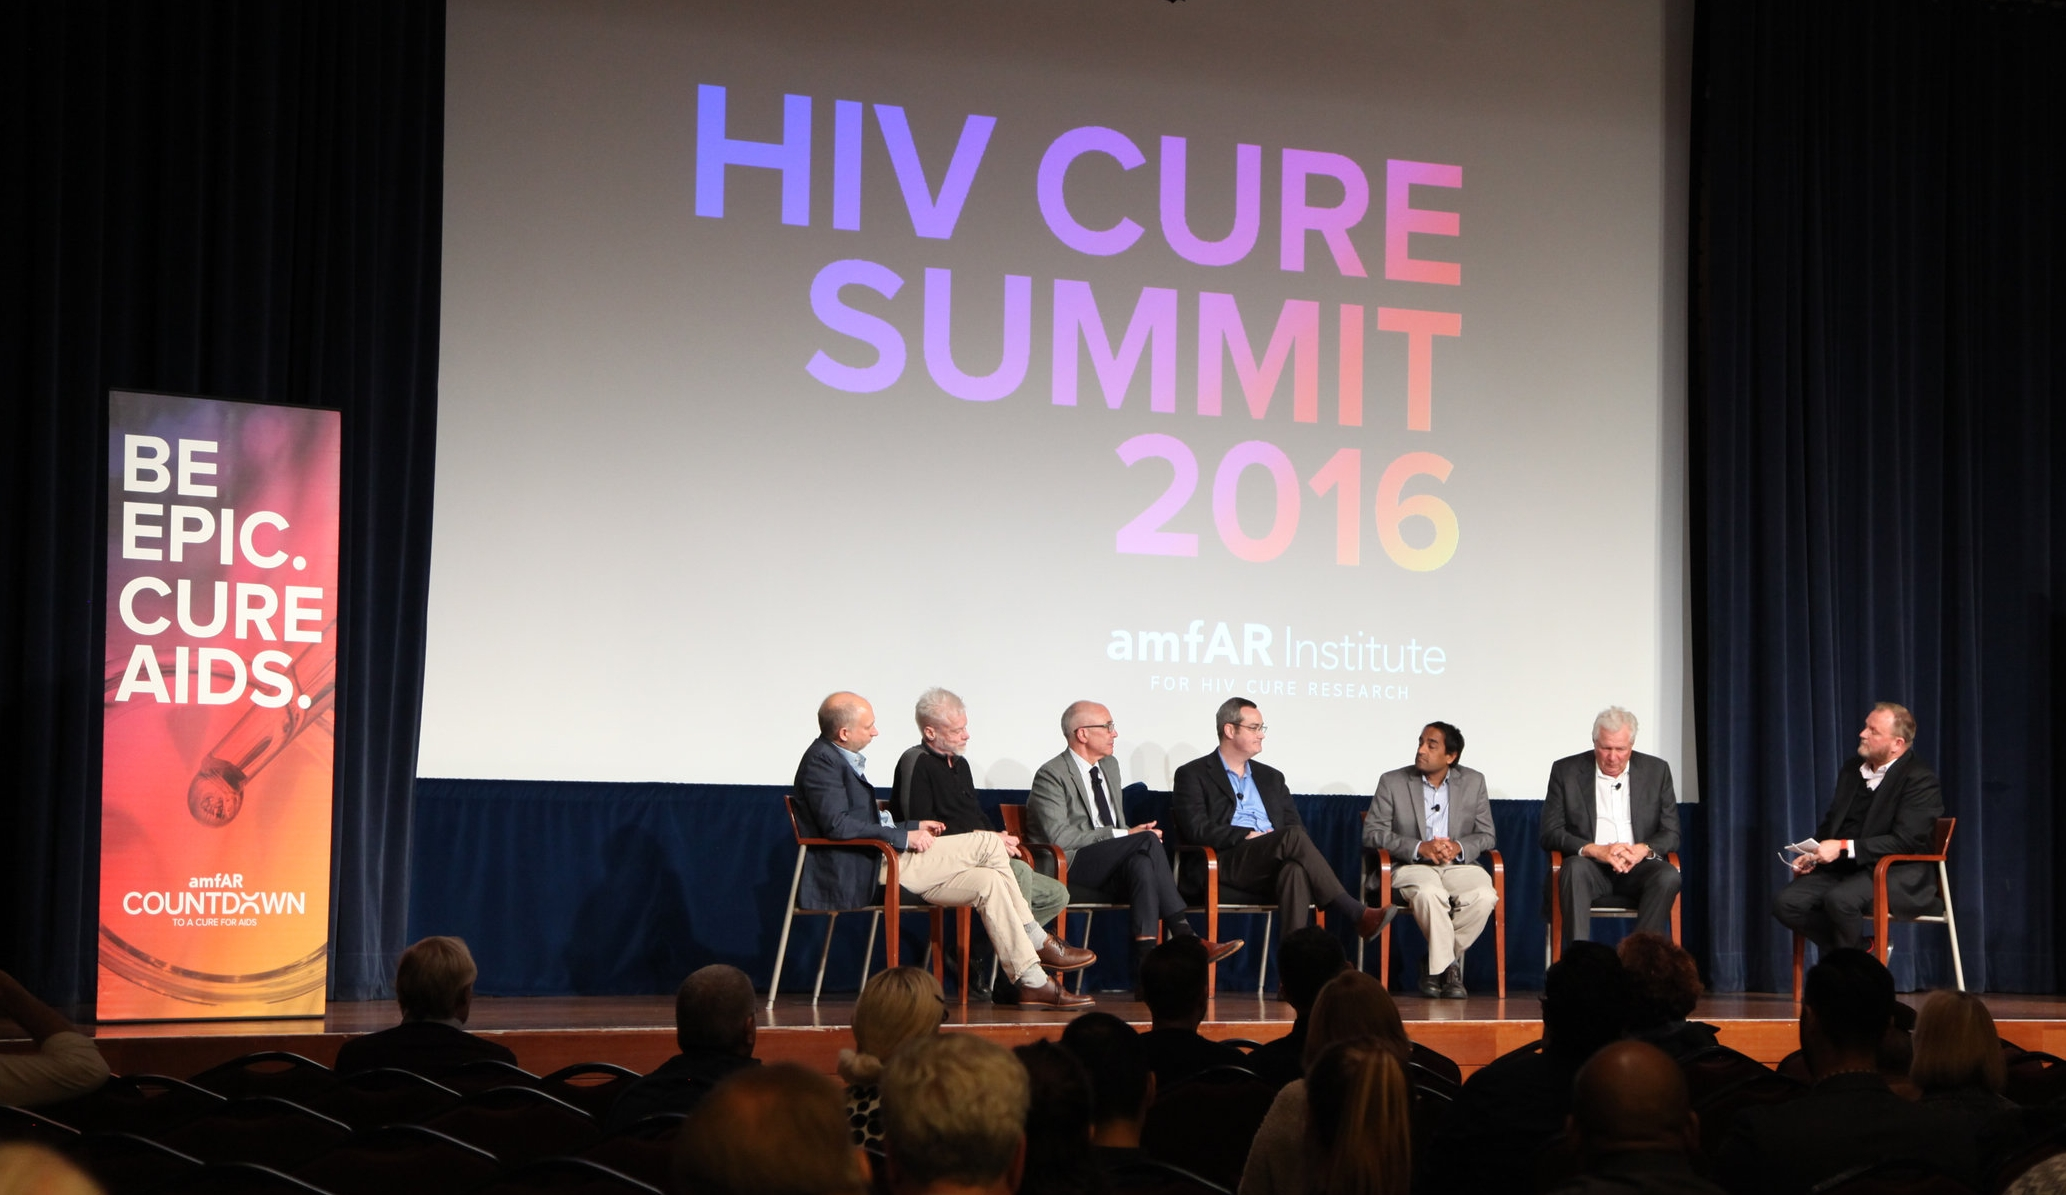 amfAR CEO Kevin Robert Frost (right) moderates the panel discussion.